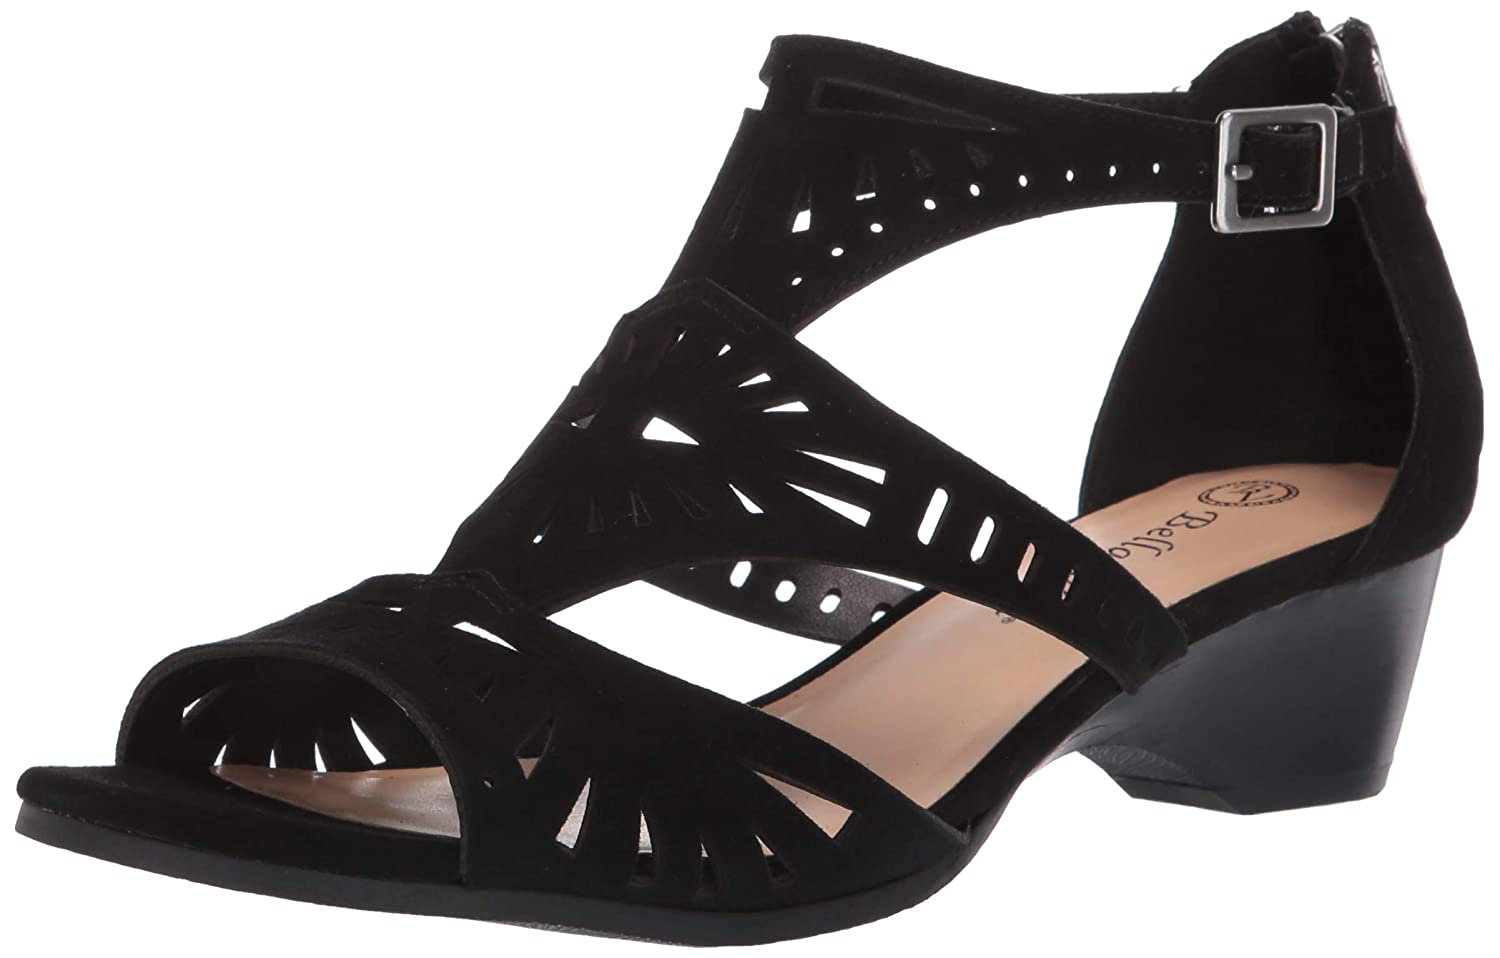 Black Kidsuede Leather Bella Vita Womens Penny Cutout Sandal with Back Zipper Heeled Sandal